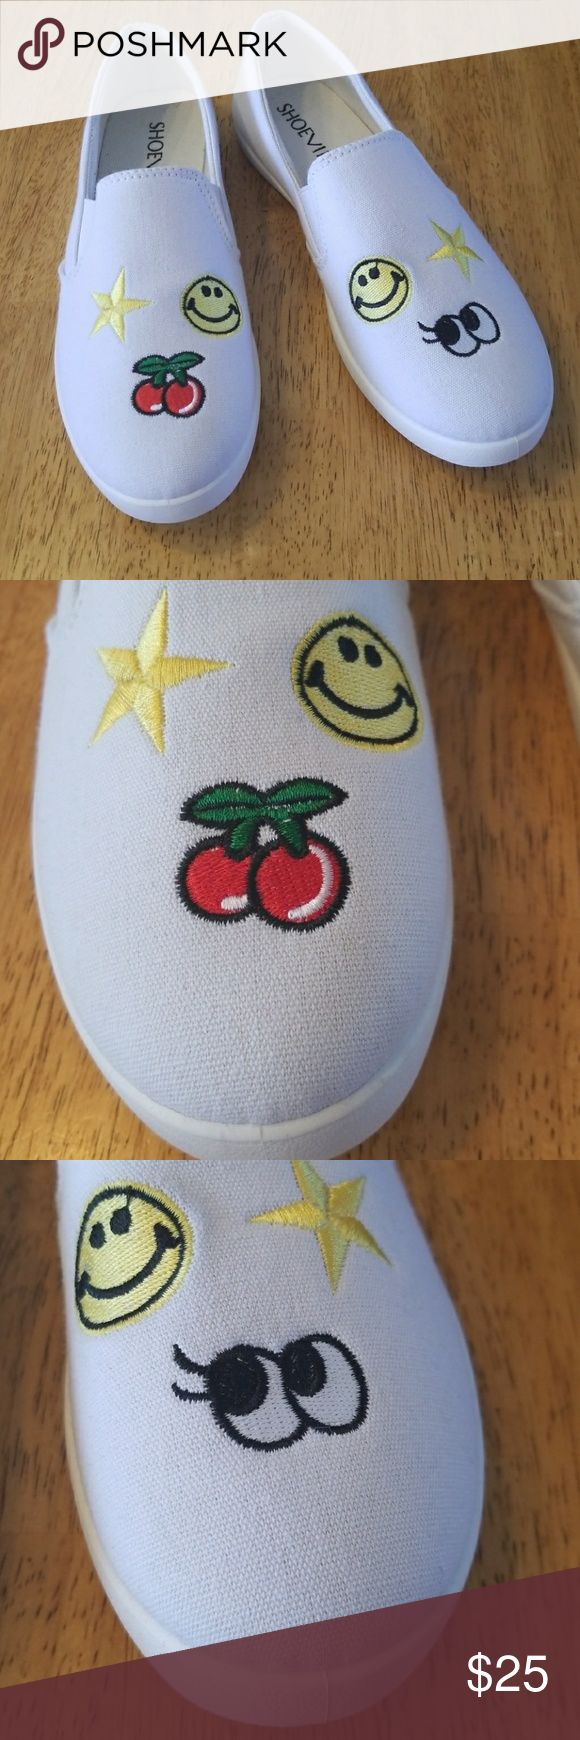 White Slip On Embroidered By Shoe Vibe These Shoes Are Brand New In Box Never Worn  Super Cute Canvas Slip On with Stars Cherries Eyes and Smiley Face Embroidered Tops 😎 Gusseted Sides provides ease of foot entry and comfort stay on fit.  Padded Foot Bed . Box Included  Be Sure To Check Out Additional Listings For this same shoe in Black or Pink as well as listings for men's and kids shoes!  ✔ BUNDLE UP FOR SAVINGS  ✔ Shoe Vibe Shoes